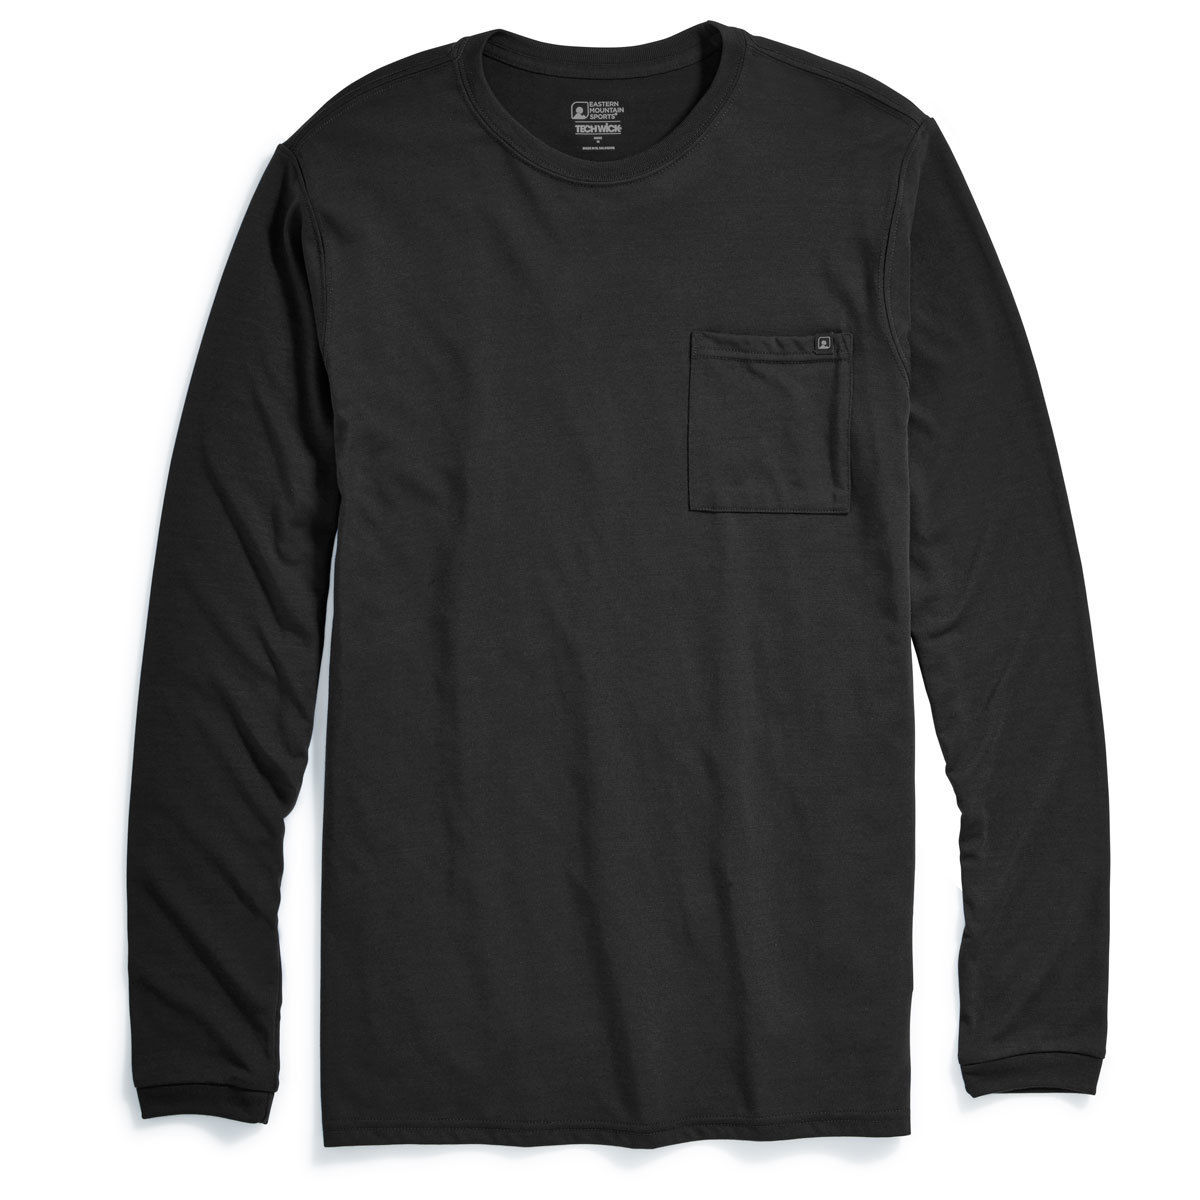 Emsa(R) Men's Techwicka(R) Vital Pocket Long-Sleeve Tee - Black, L